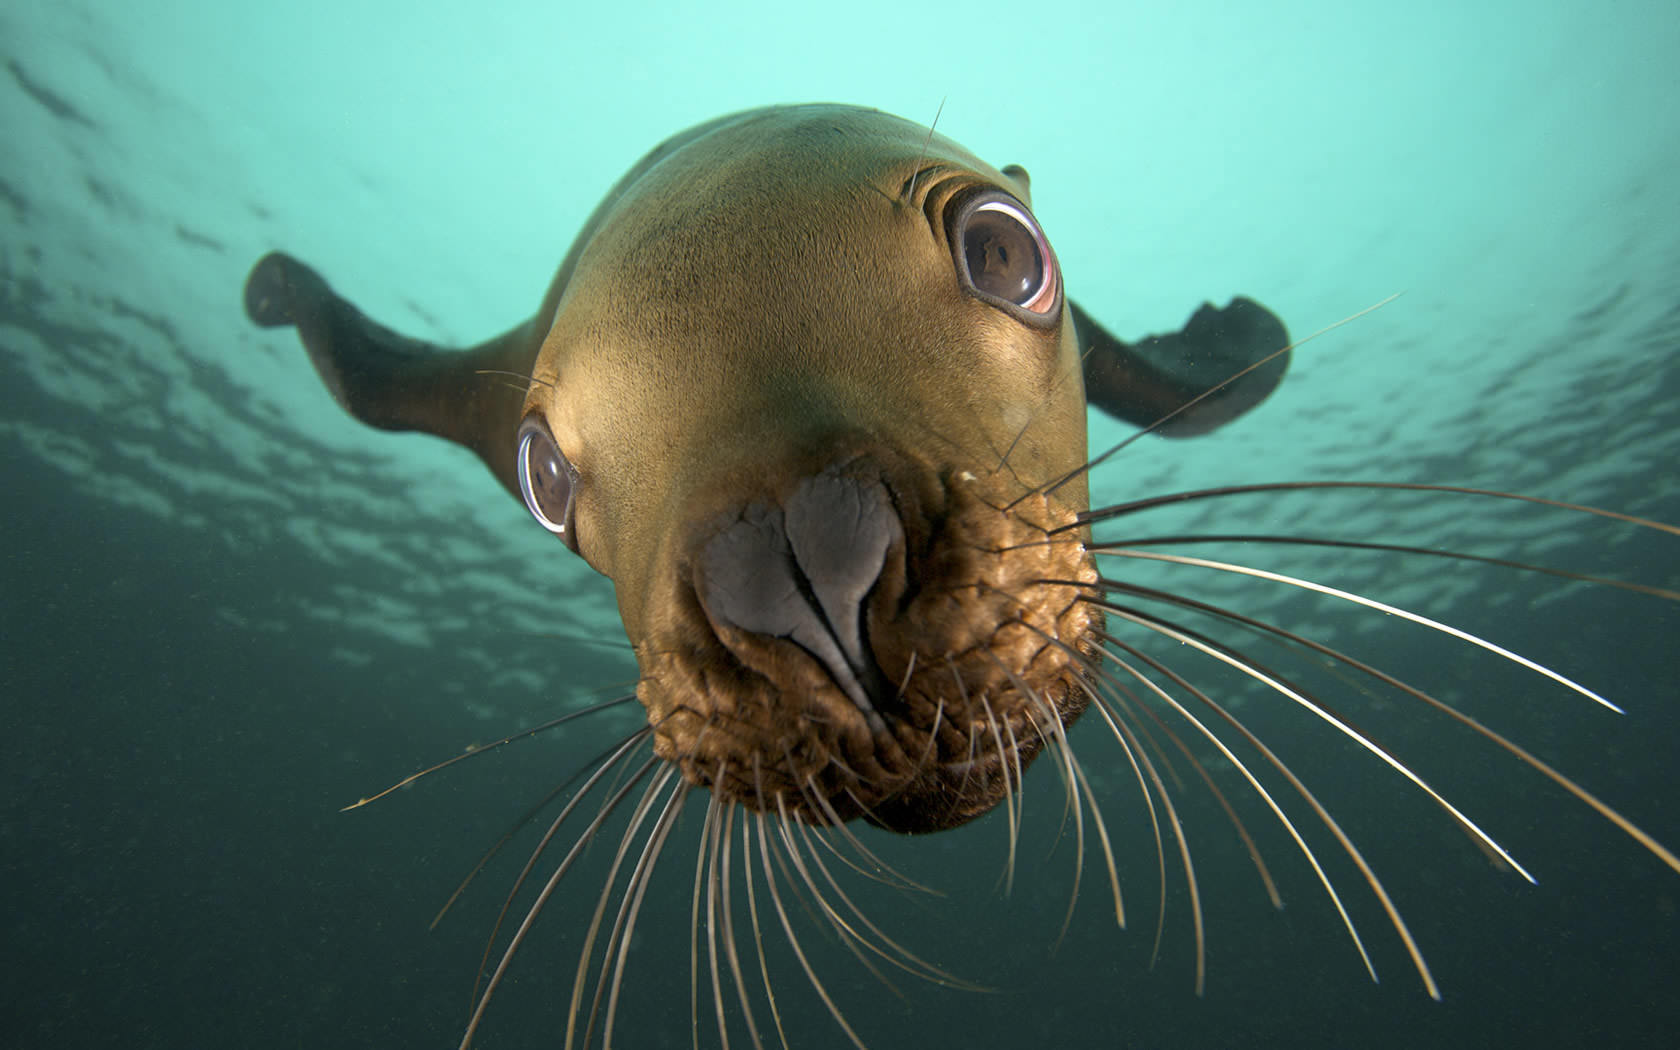 Underwater Seal Wallpaper 1680x1050